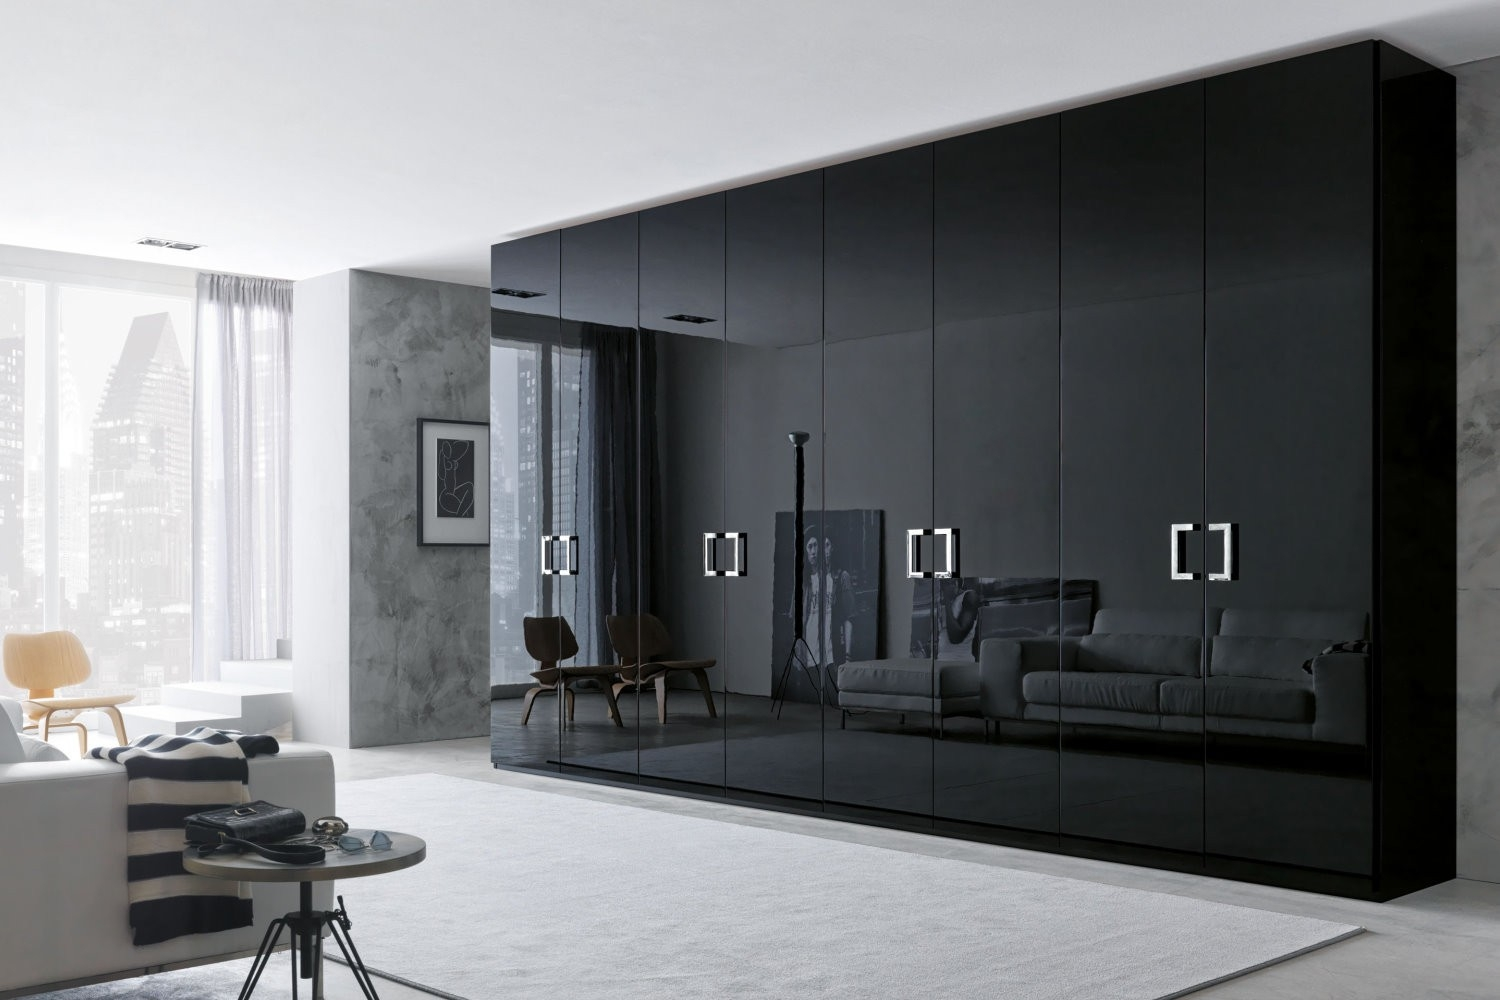 35 Modern Wardrobe Furniture Designs Wardrobe Design Gray Inside Dark Wardrobes (View 7 of 15)